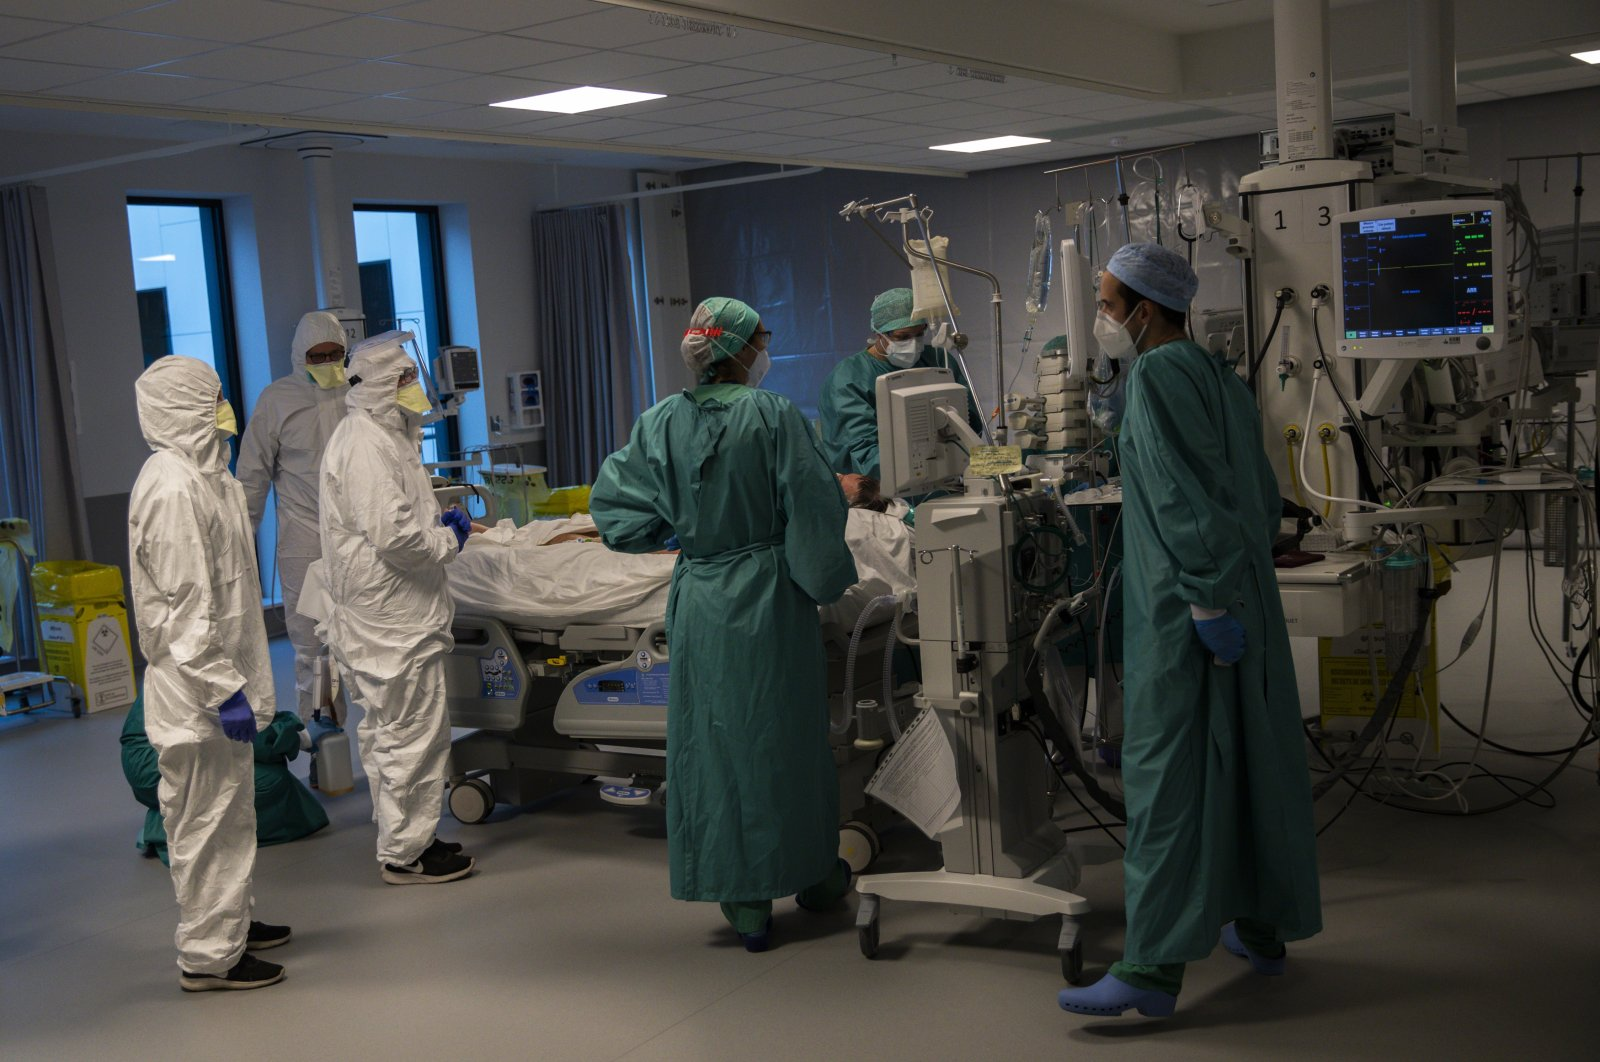 Medical personnel work in the intensive care ward for COVID-19 patients at a hospital in Liege, Belgium, Nov. 6, 2020. (AP Photo)